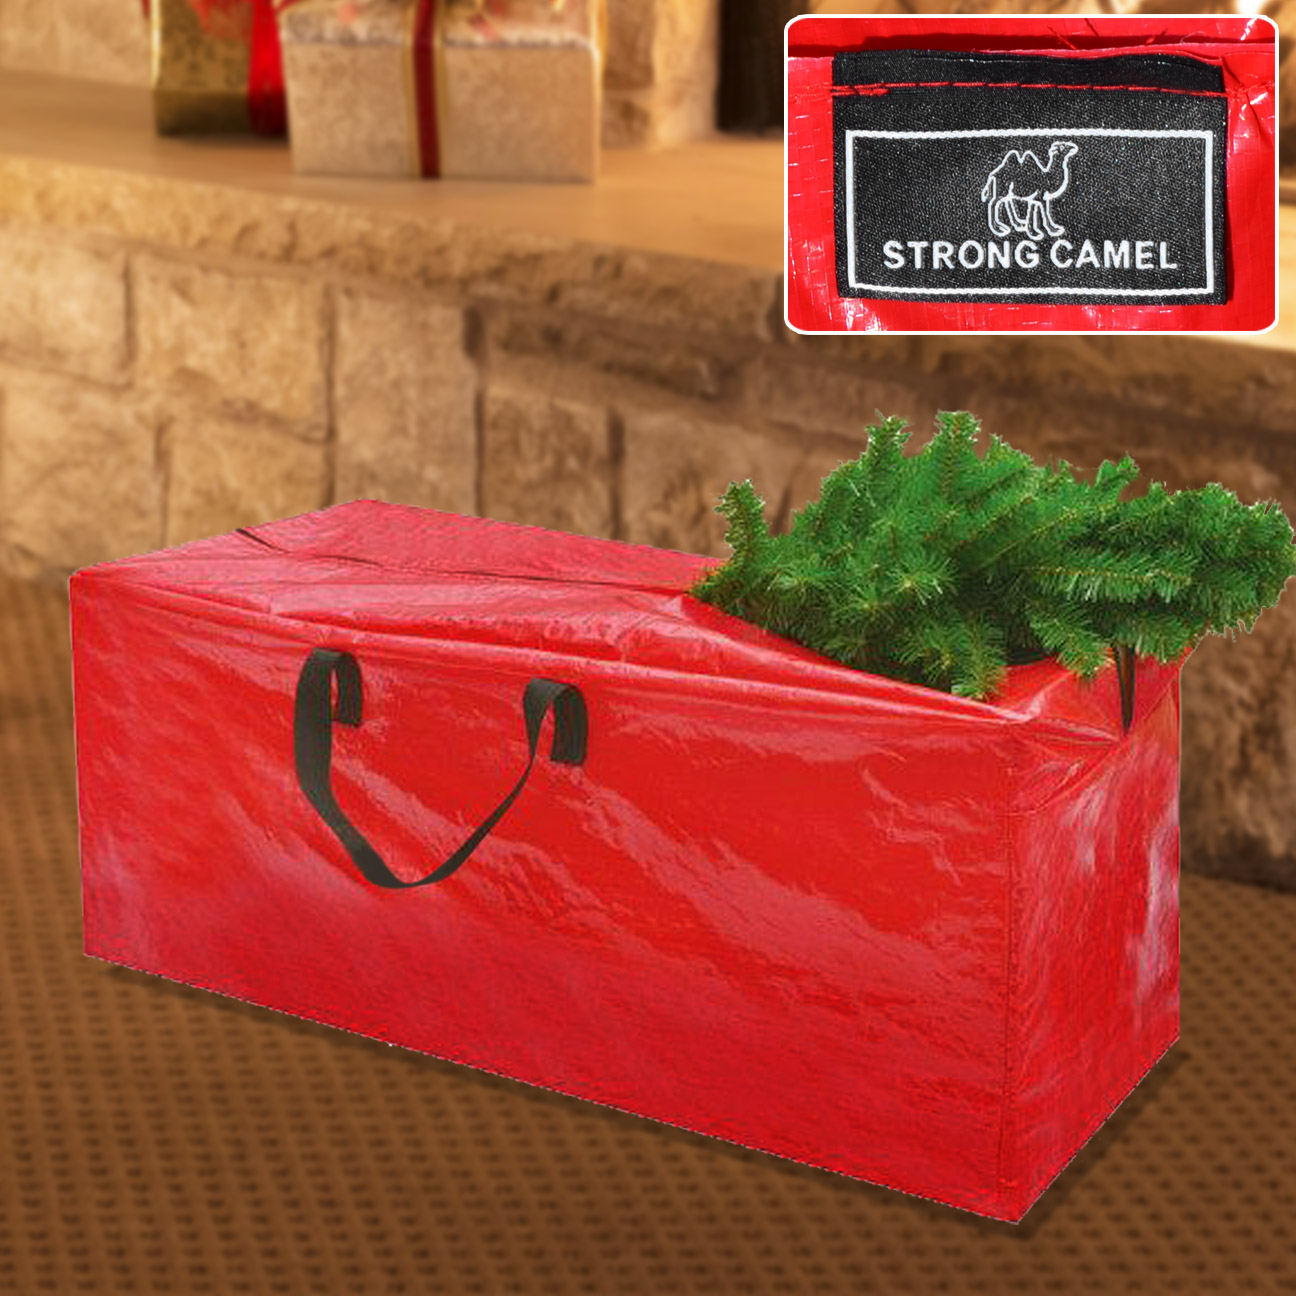 Strong Camel Heavy Duty Large Artificial Christmas Tree Storage Bag For Clean Up Holiday Red Up to 8ft